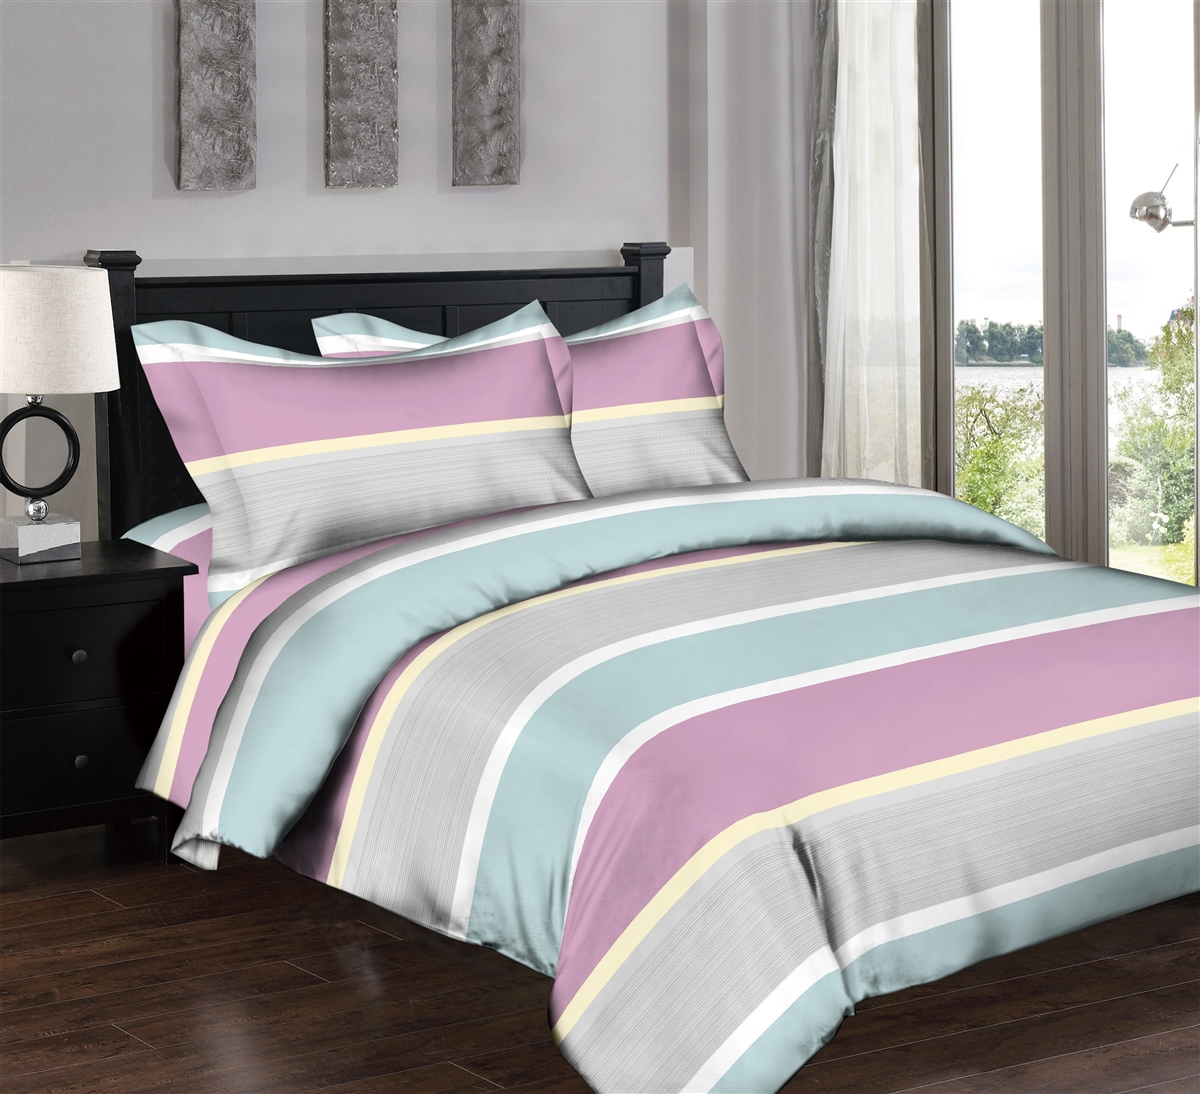 Superity Linen: Pastel Stripes Pink 6pc Twin Bedding Set